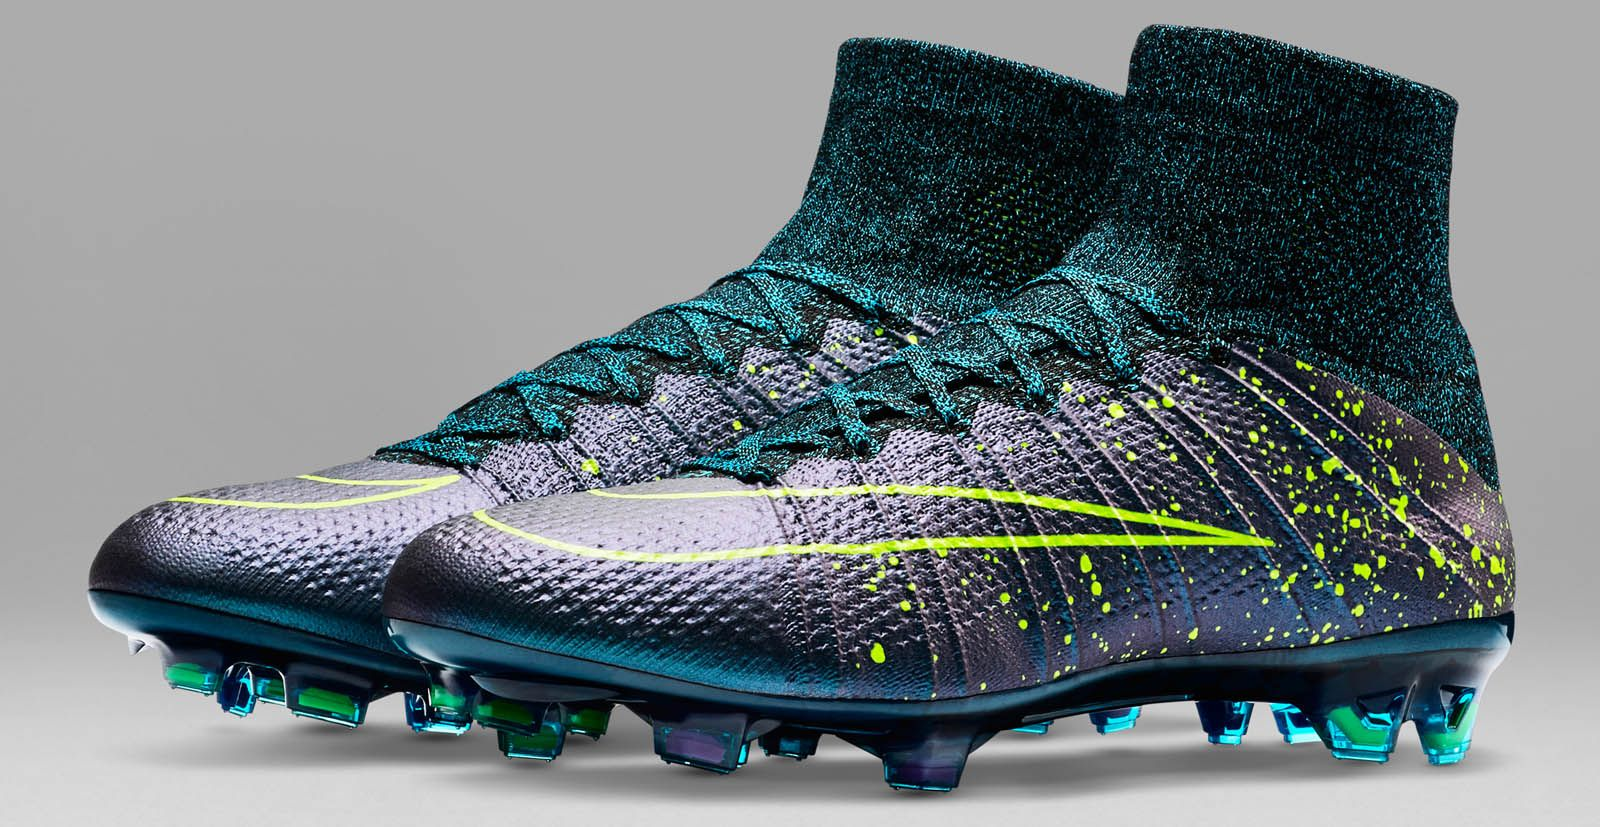 531218468 Blue Nike Mercurial Superfly 2015-2016 Boots Released - Footy Headlines